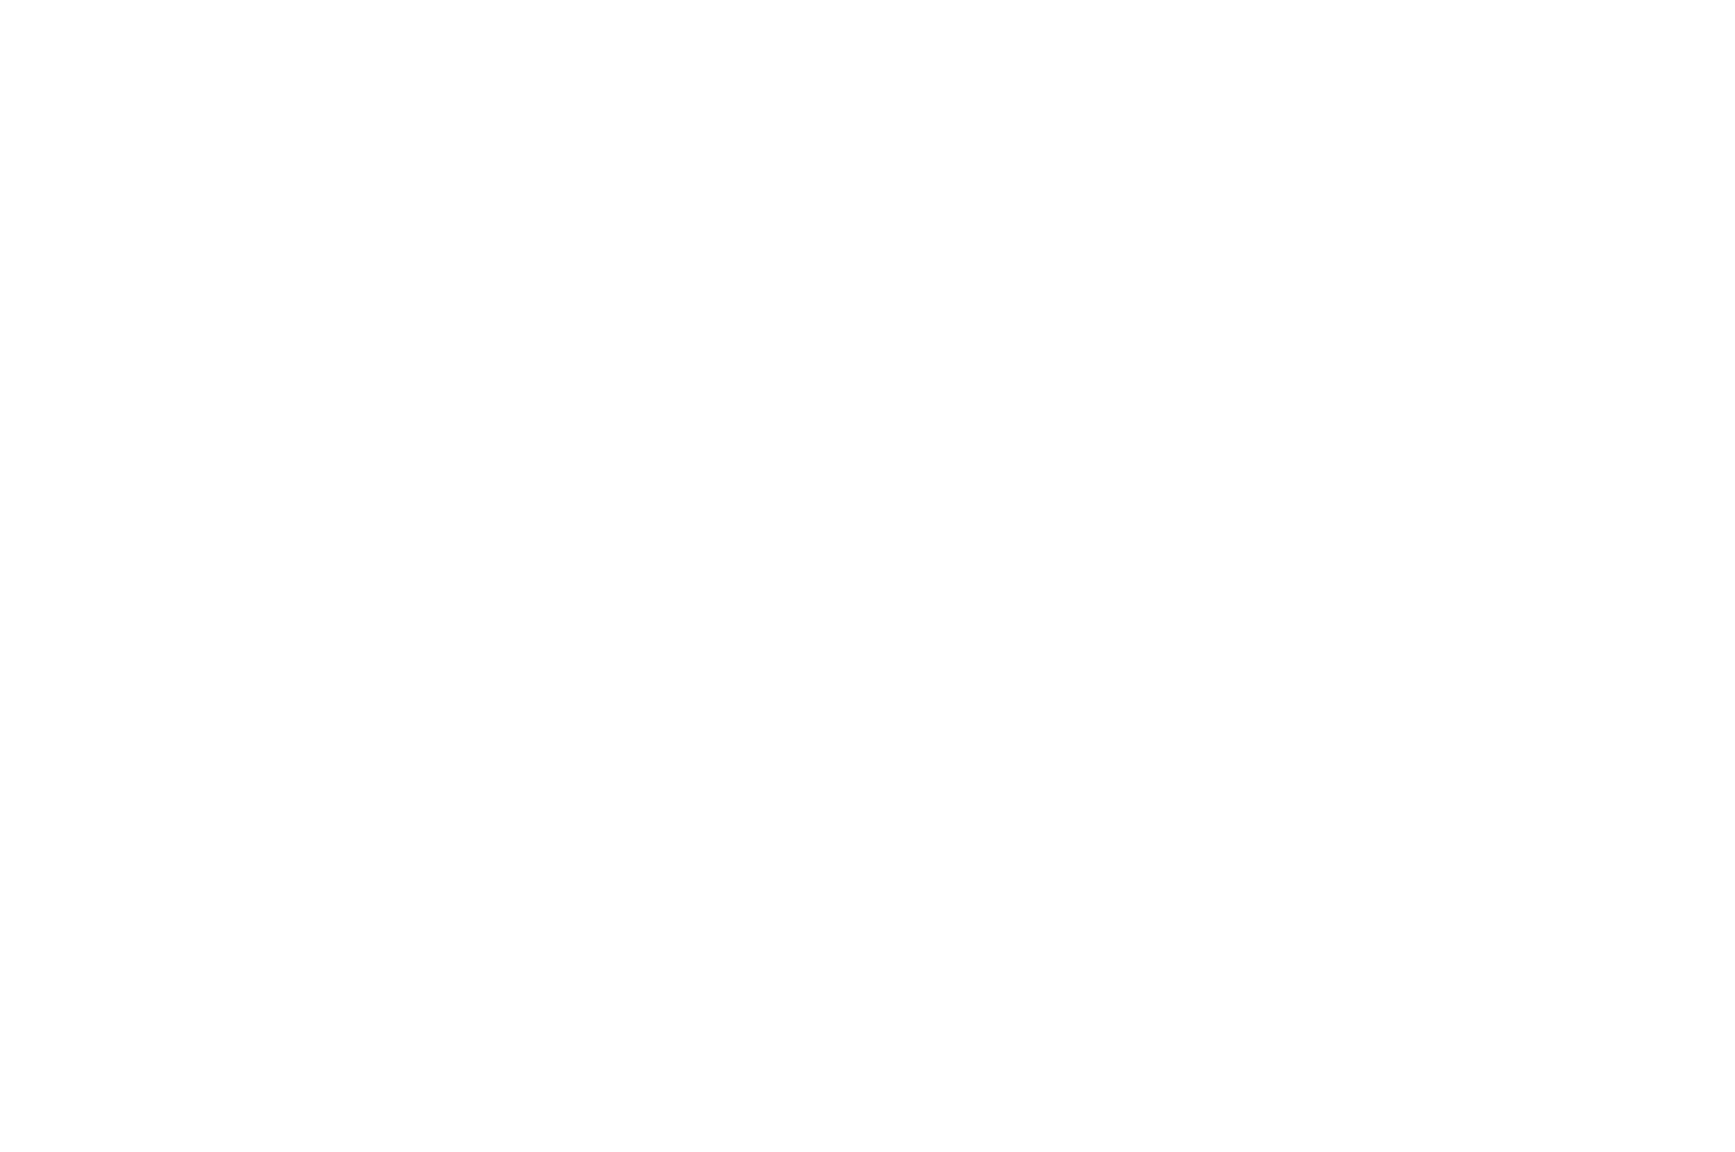 OFFICIAL SELECTION - Love Your Shorts Film Festival